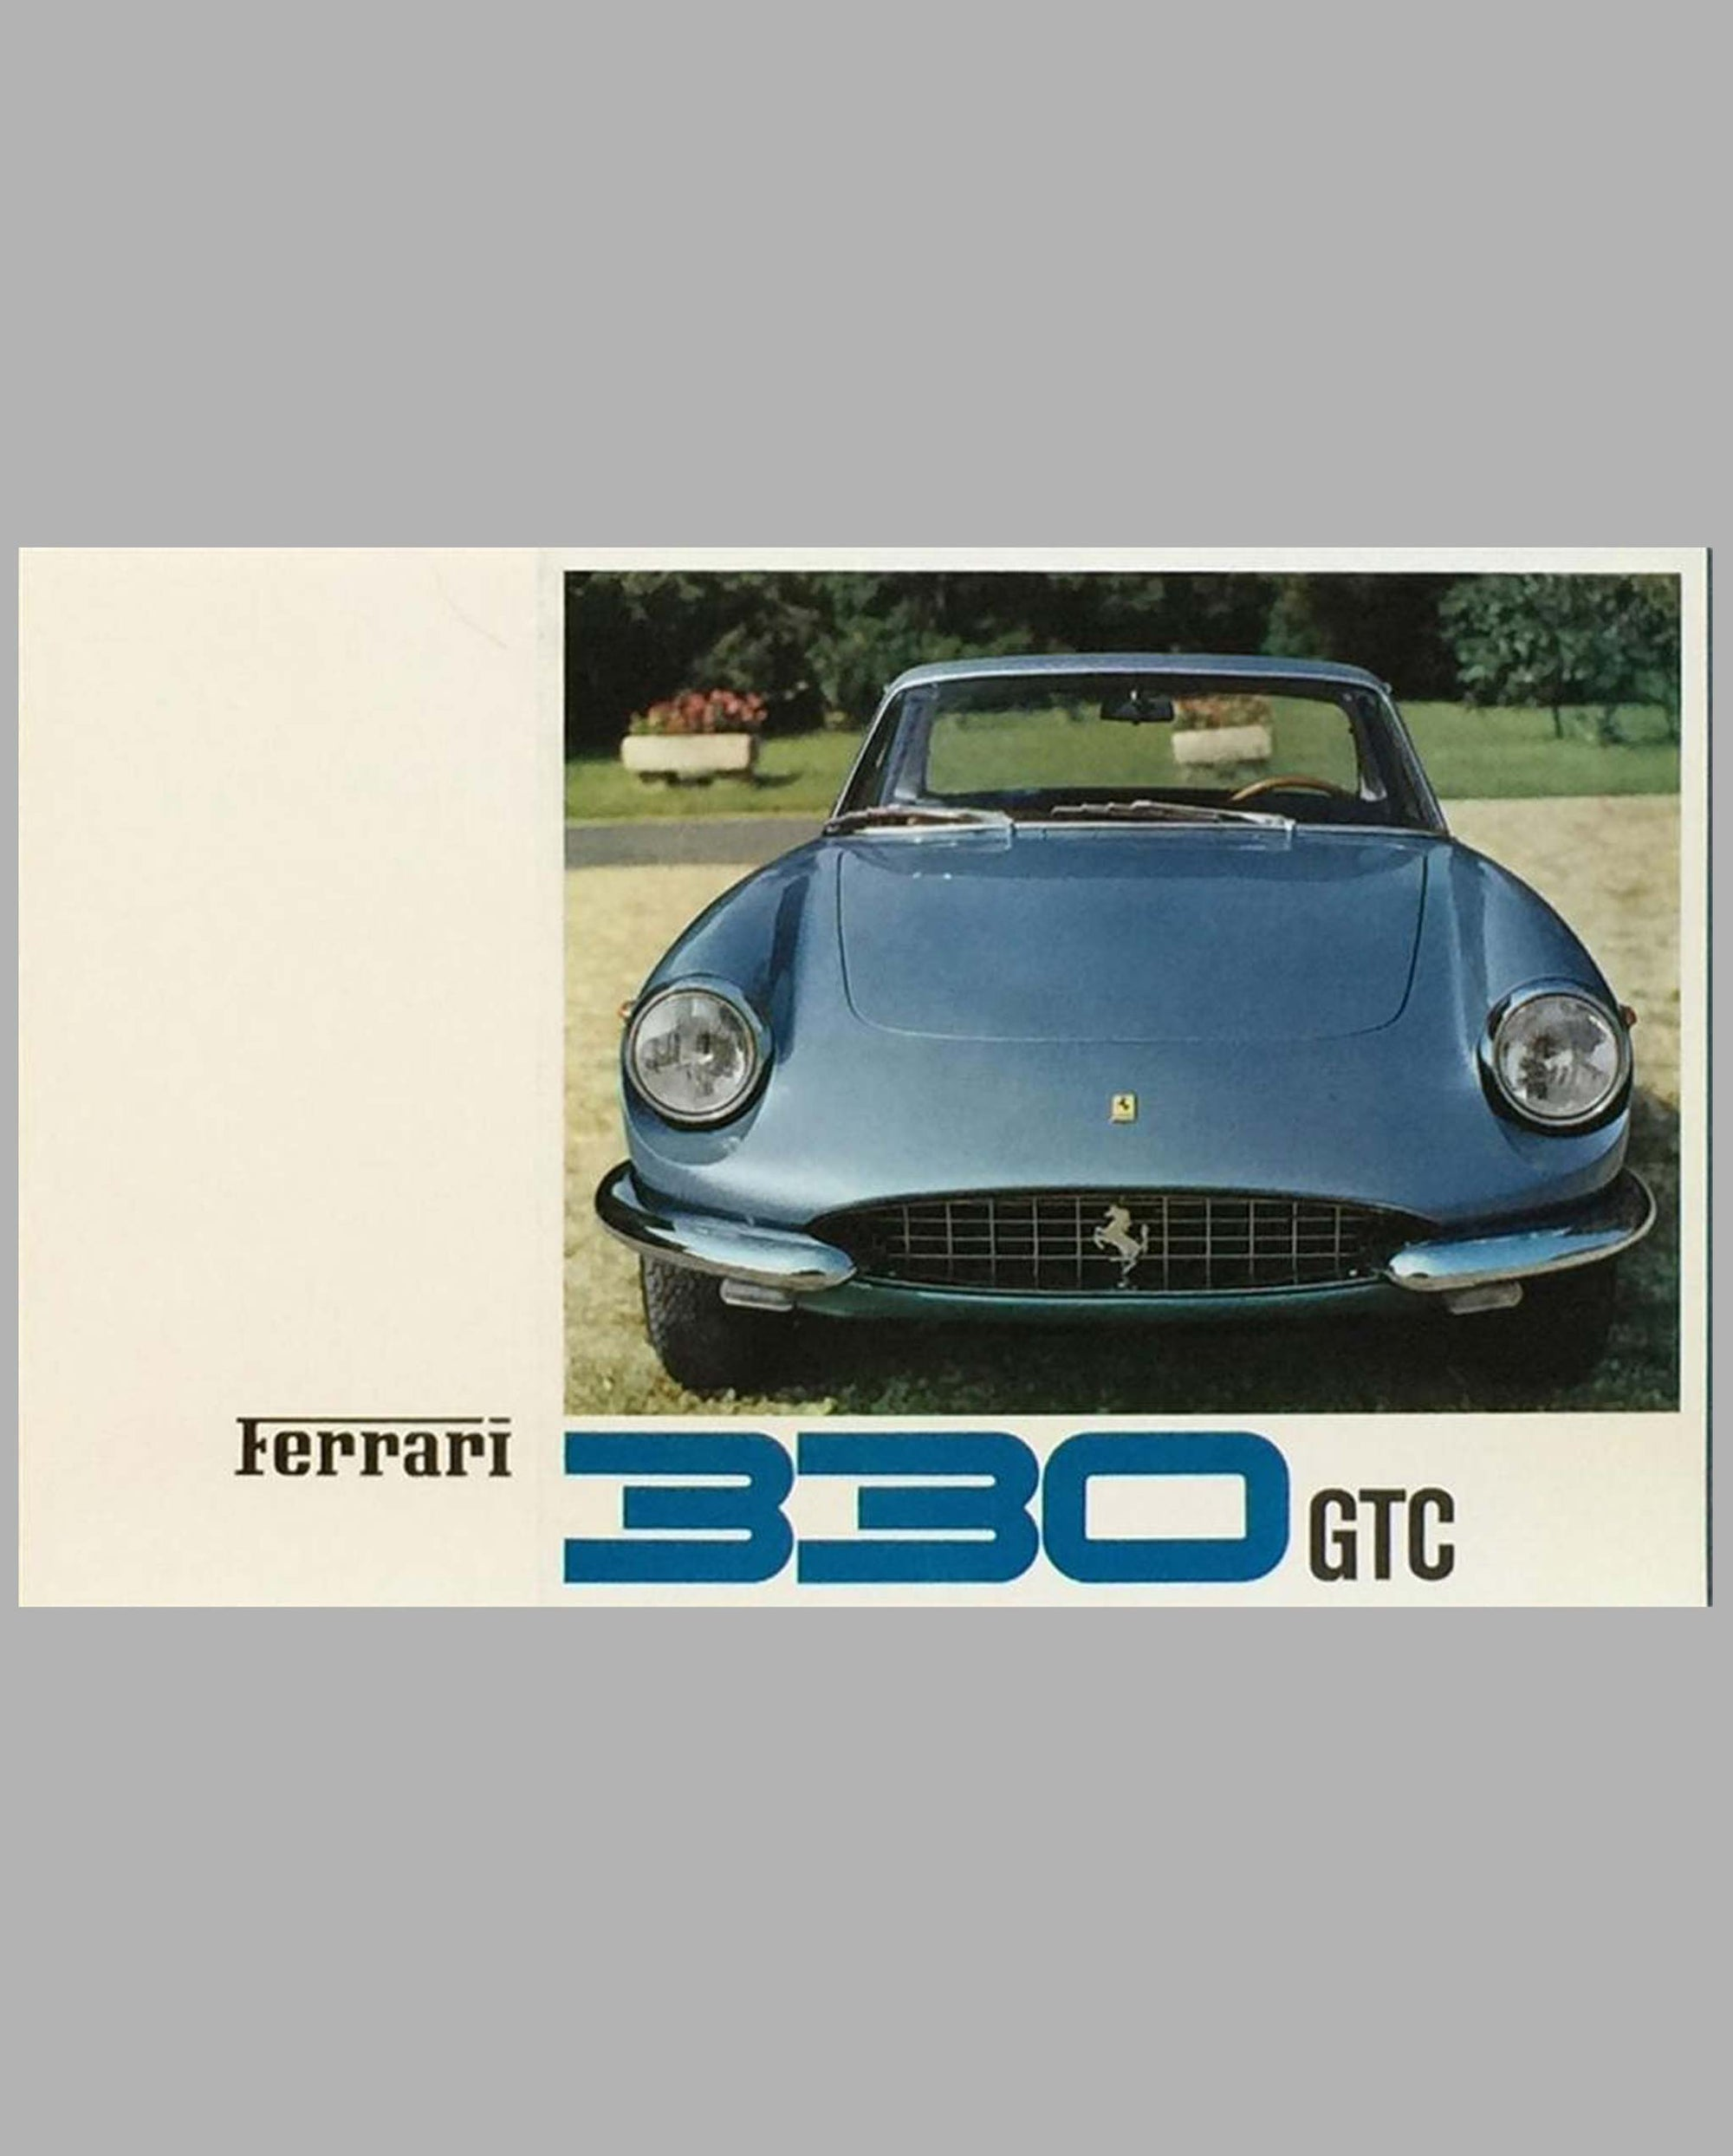 Ferrari 330 GTC original factory brochure